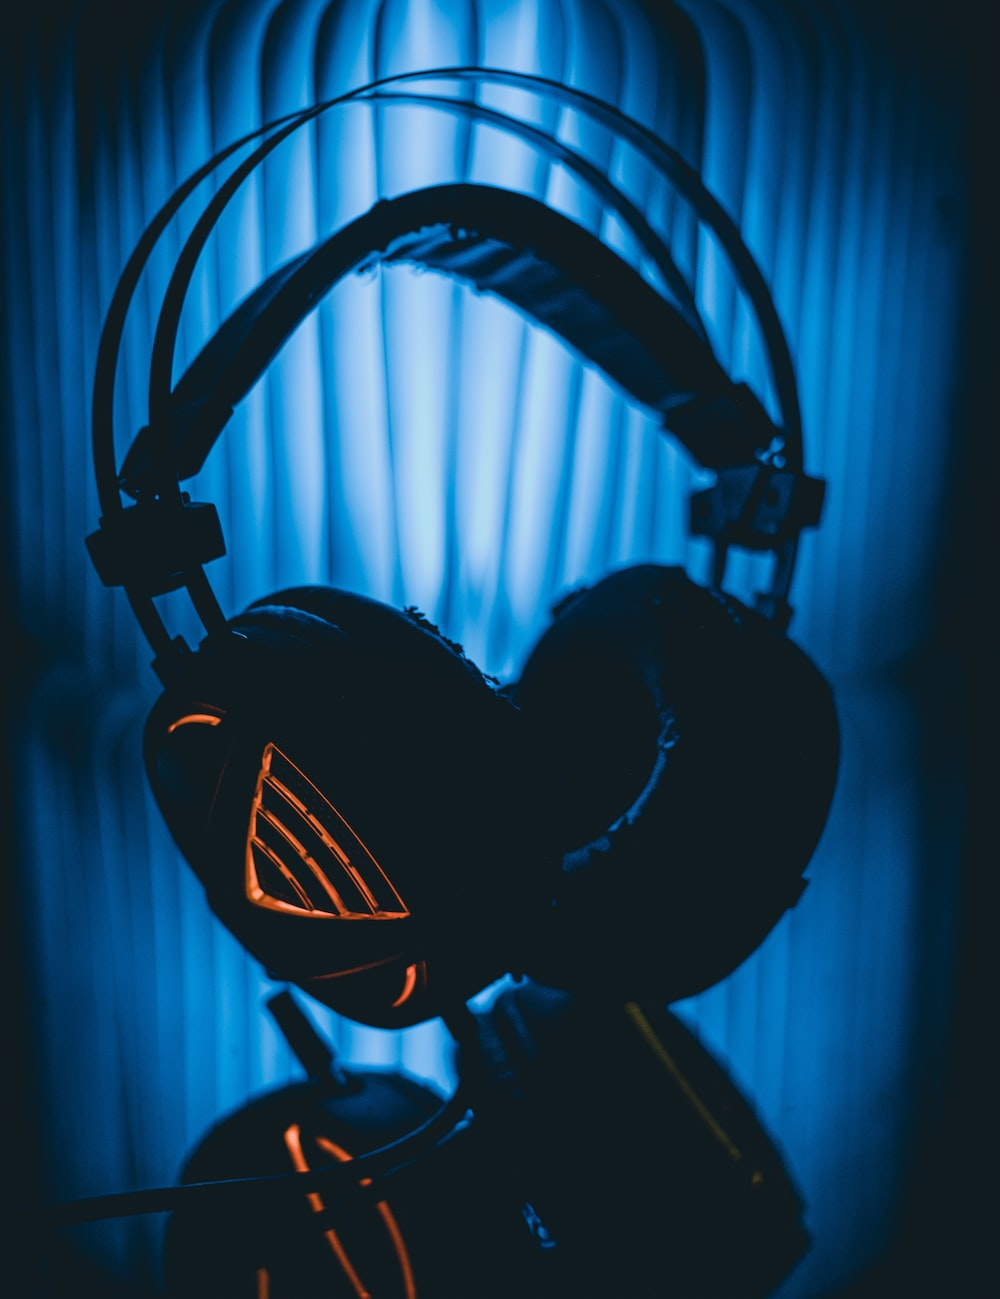 black and gray headphones on black and blue background